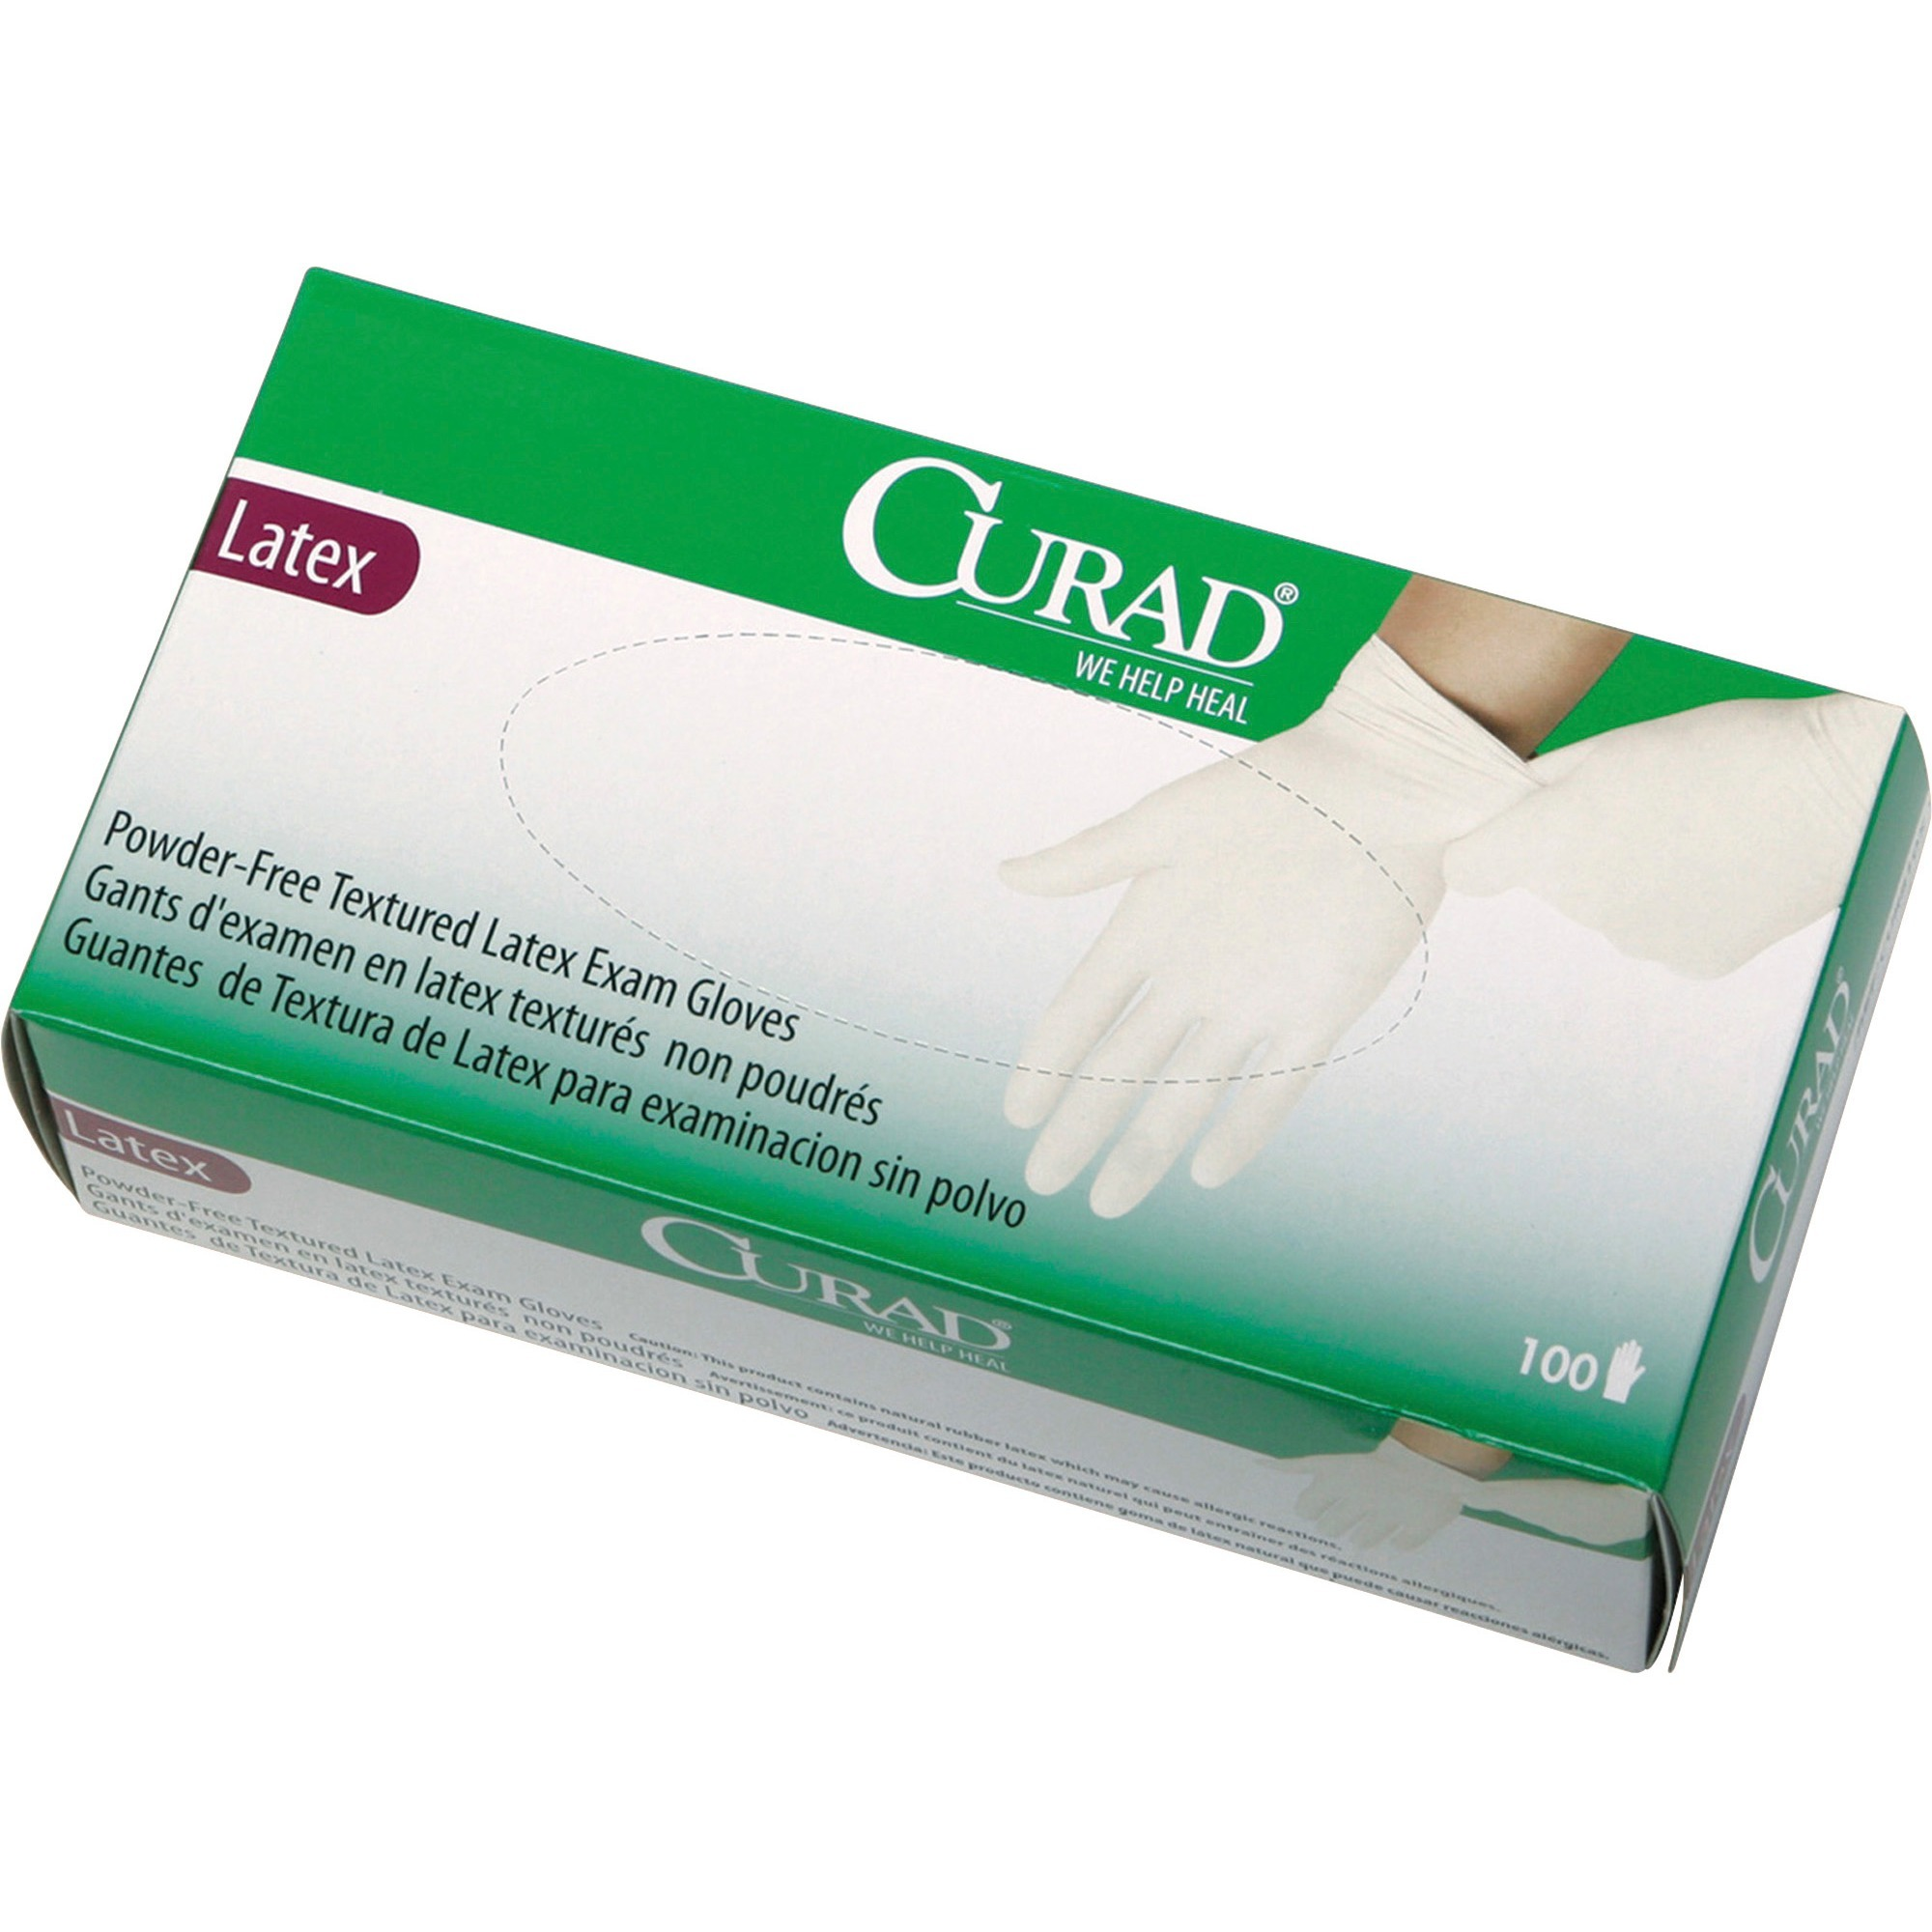 Curad, MIICUR8104, Powder Free Latex Exam Gloves, 100 / Box, White